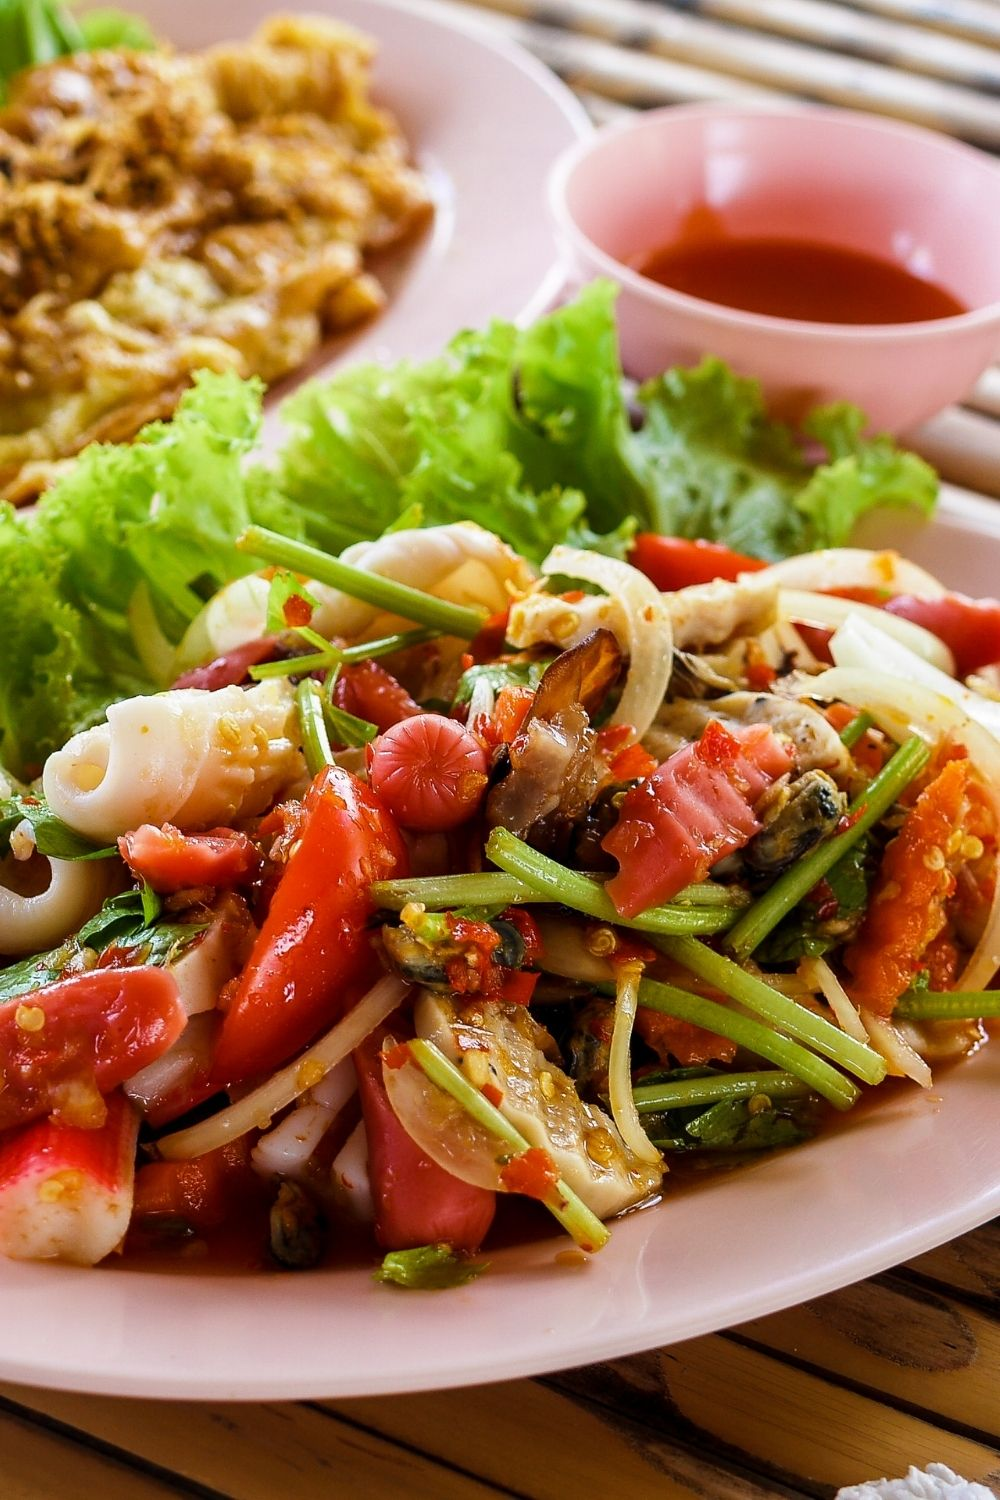 a close up view of a plate of fresh salad